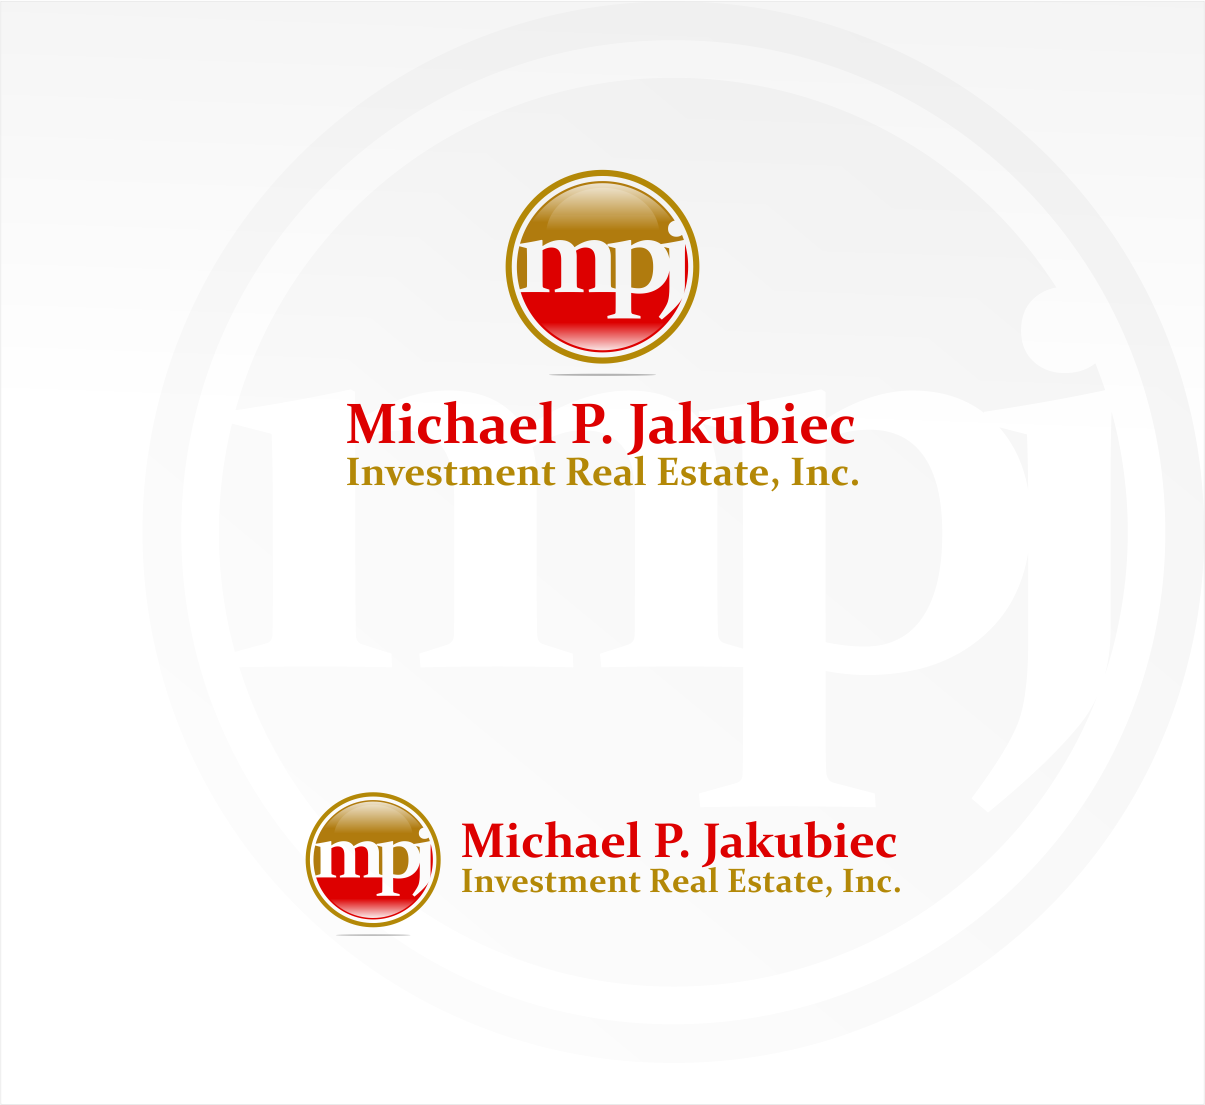 Logo Design by haidu - Entry No. 23 in the Logo Design Contest New Logo Design for Michael P. Jakubiec Investment Real Estate, Inc..